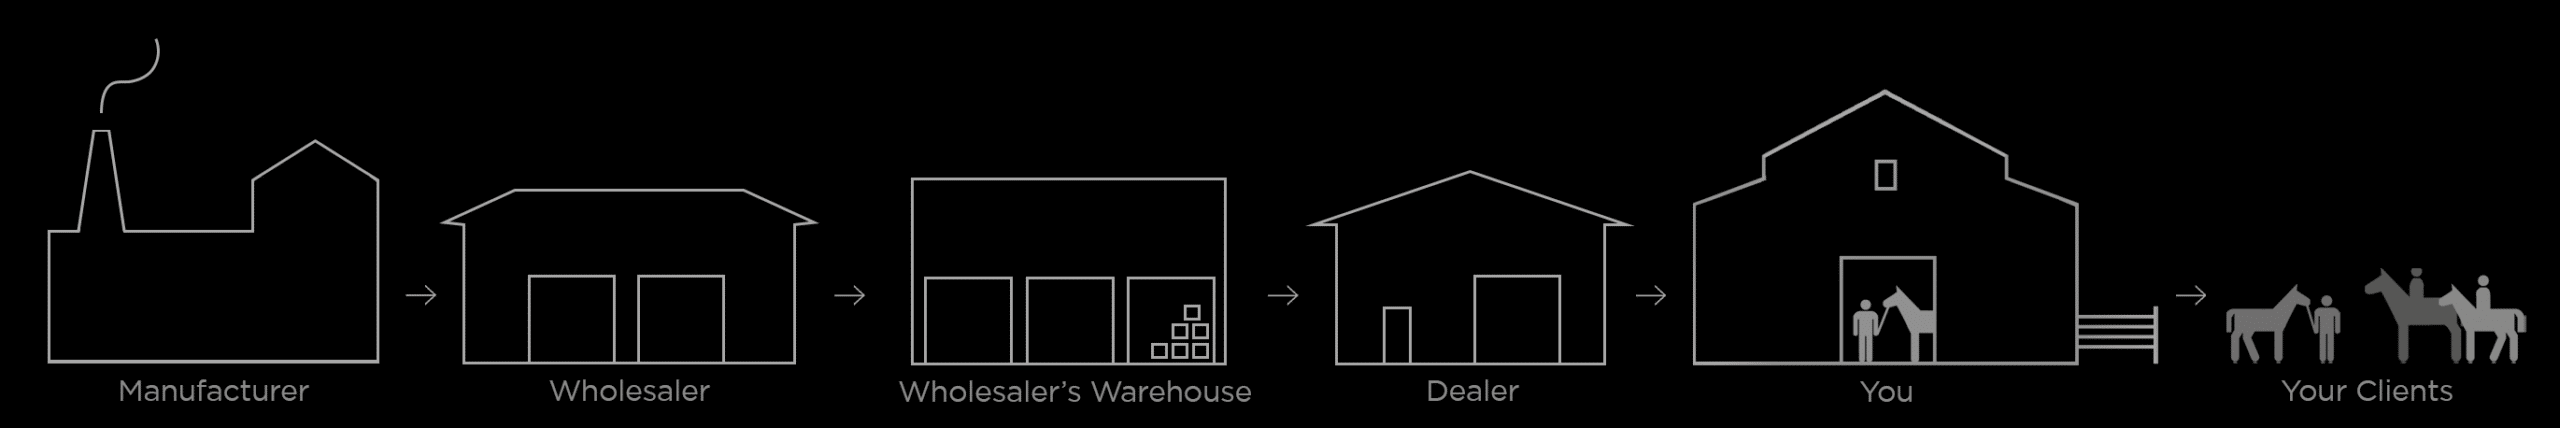 process of competitors' manufacturing and distribution